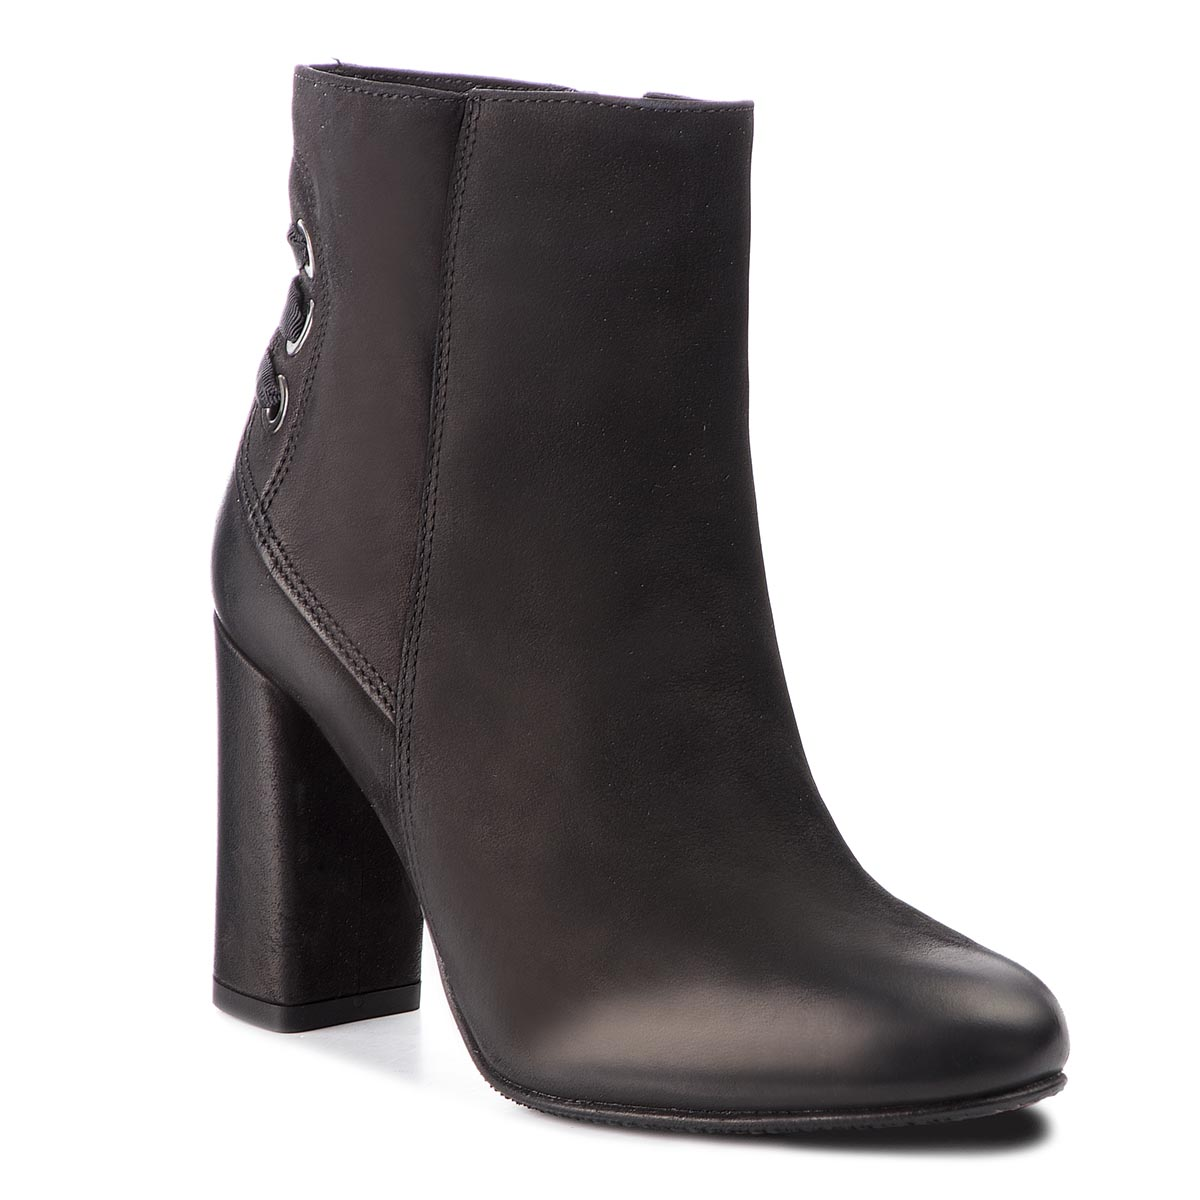 Bottines LORETTA VITALE - 5316  Black